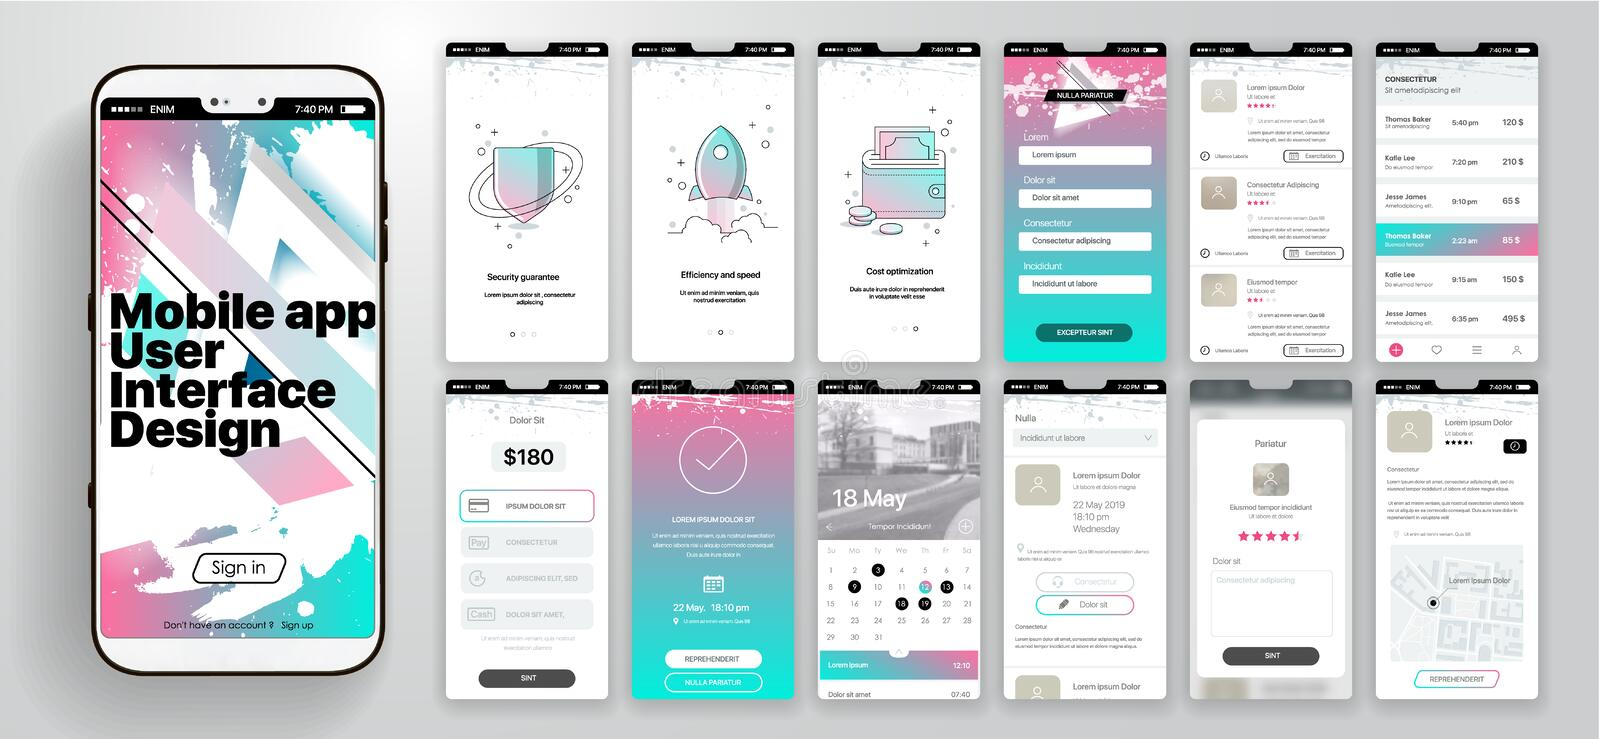 Design of the mobile application, UI, UX. A set of GUI screens with login and password input, home page, news feed royalty free illustration